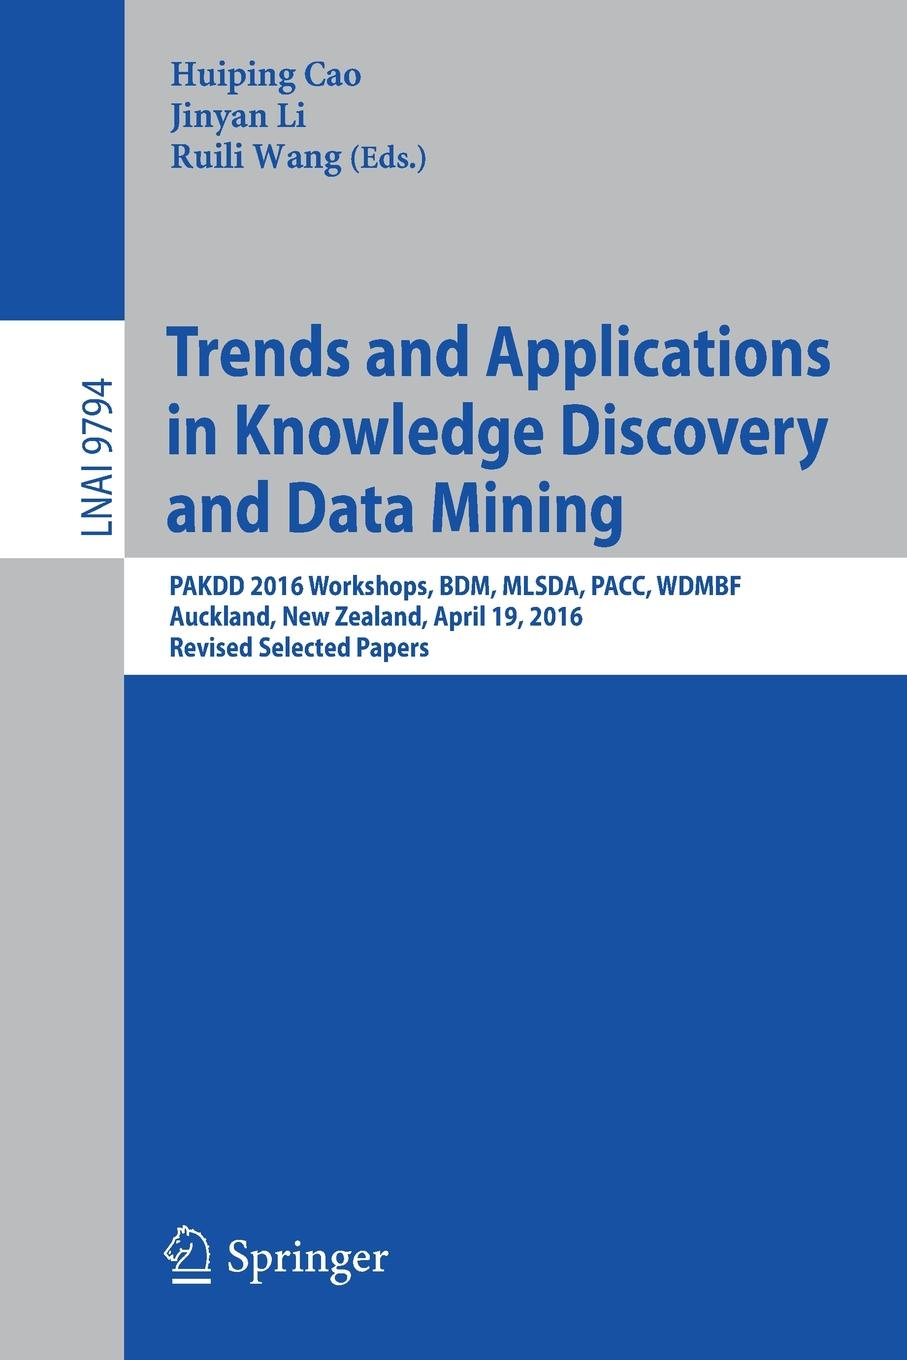 лучшая цена Trends and Applications in Knowledge Discovery and Data Mining. PAKDD 2016 Workshops, BDM, MLSDA, PACC, WDMBF, Auckland, New Zealand, April 19, 2016, Revised Selected Papers